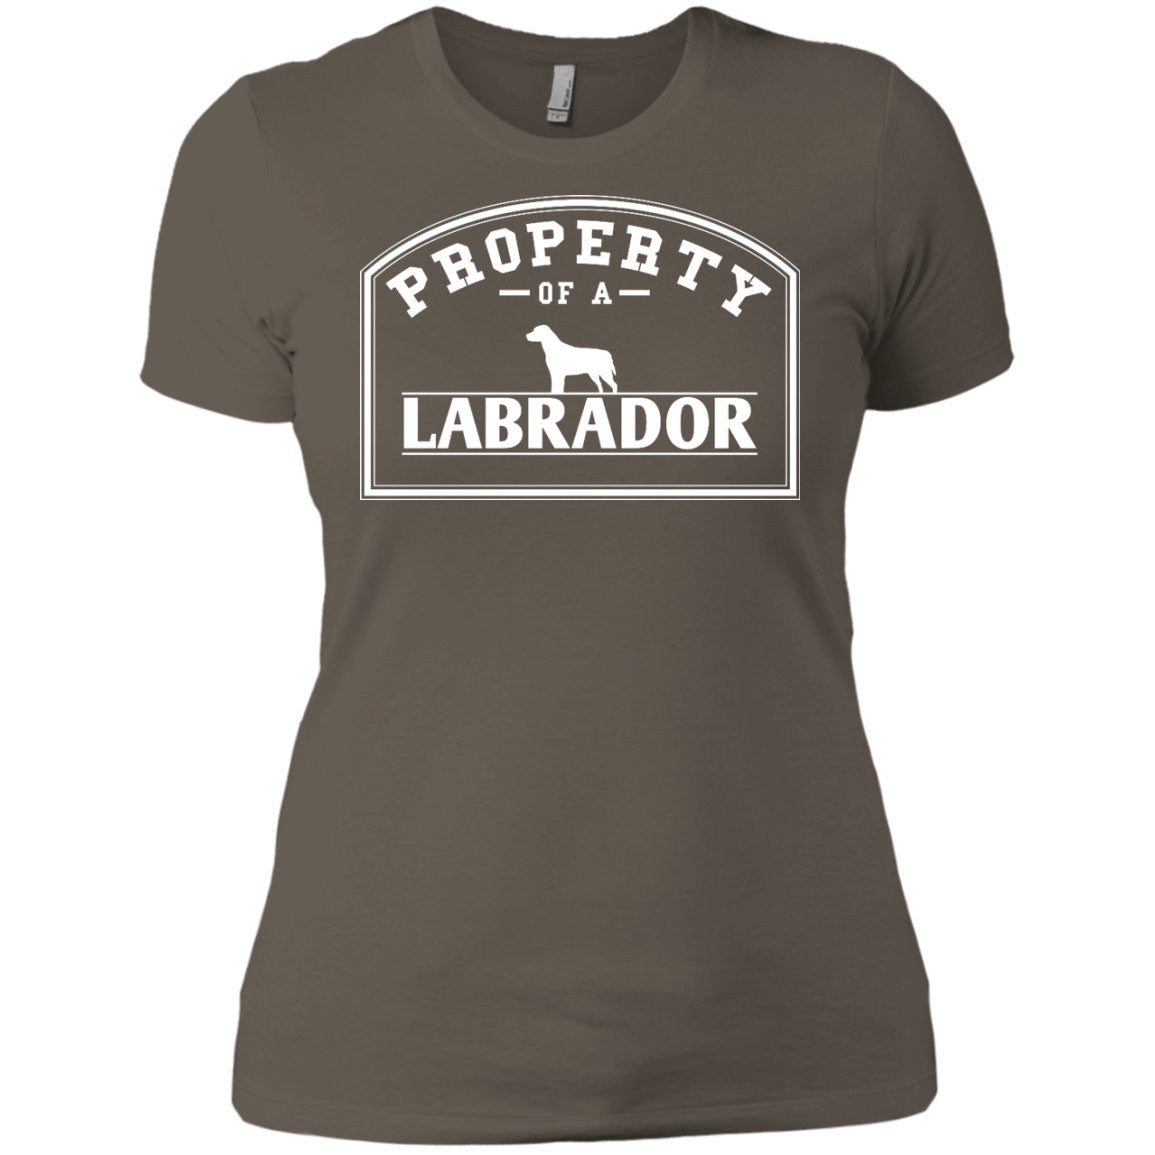 Labrador - Property Of A Labrador - Next Level Ladies' Boyfriend Tee